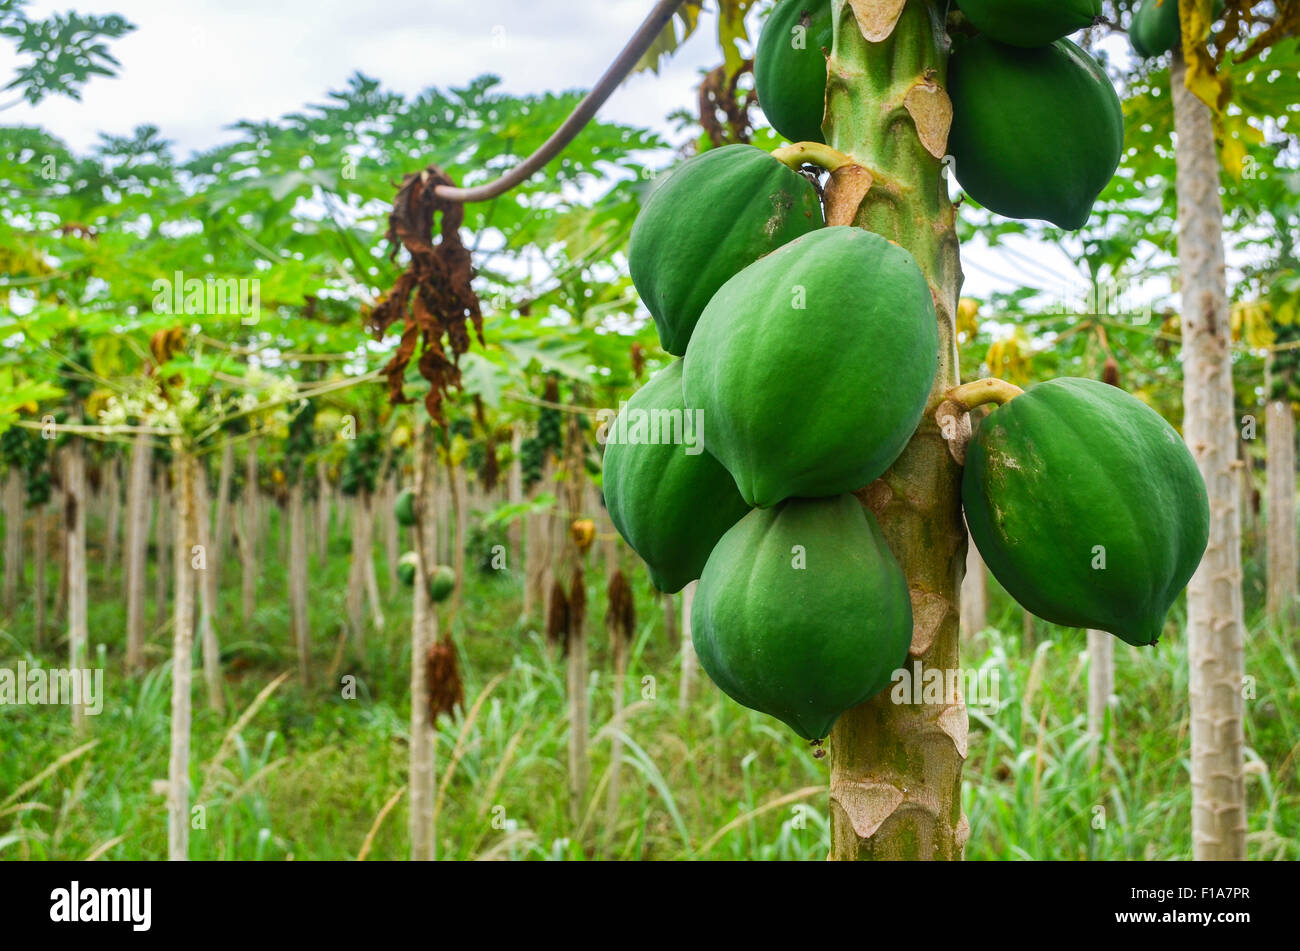 Papaya plantation in Ivory Coast / Côte d'Ivoire - Stock Image